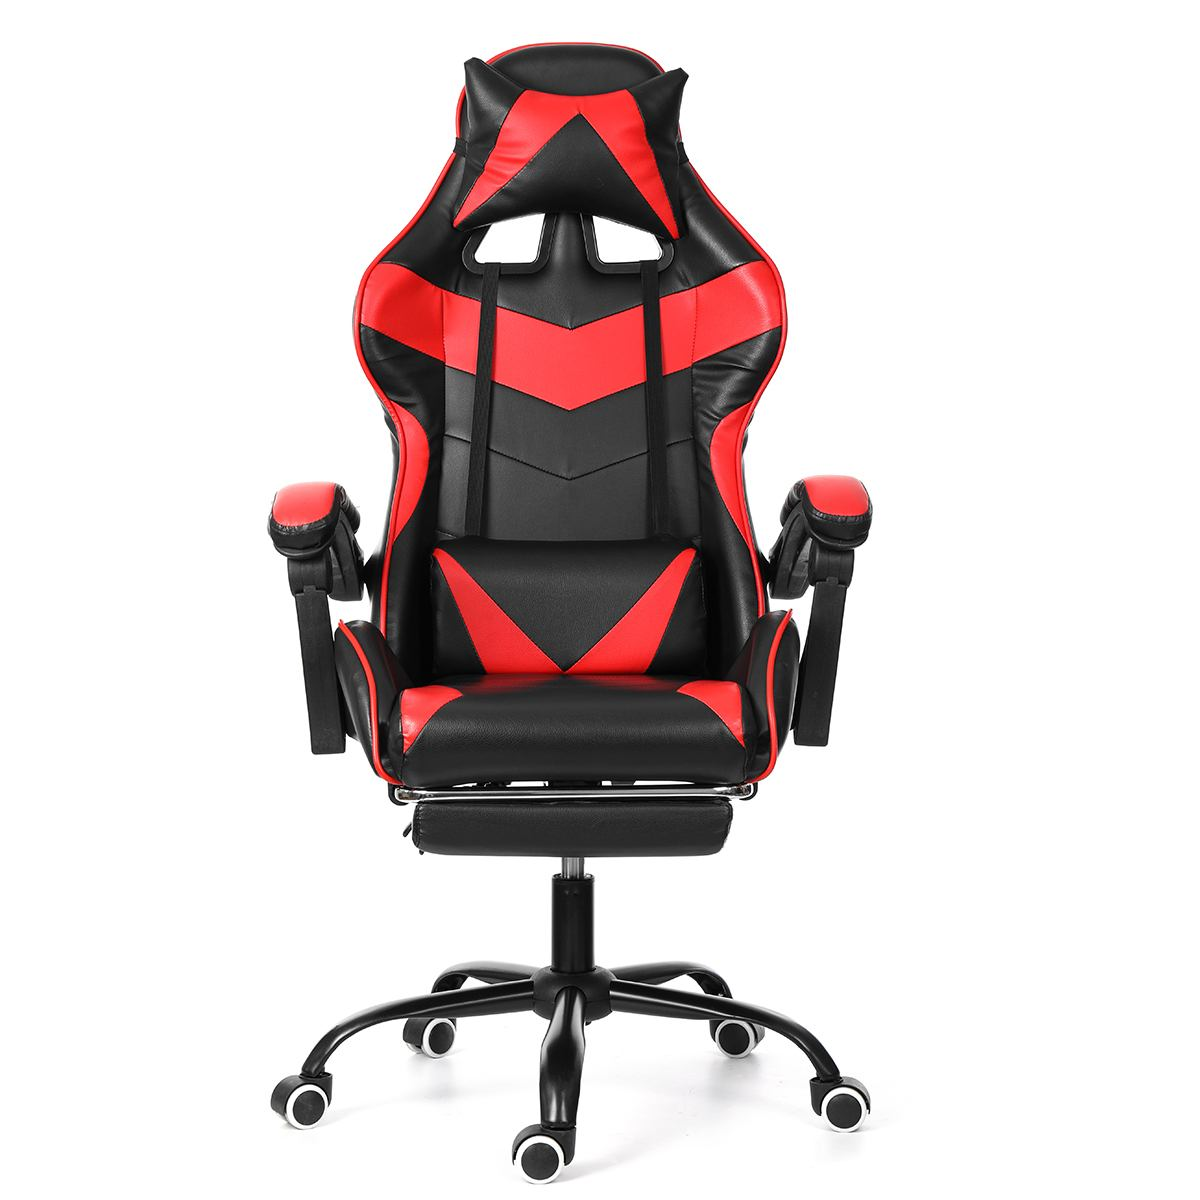 Wcg Gaming Chair Electrified Cafe Household Chair Ergonomic Computer Office Furniture Executive Desk Chair Recliner Footrest